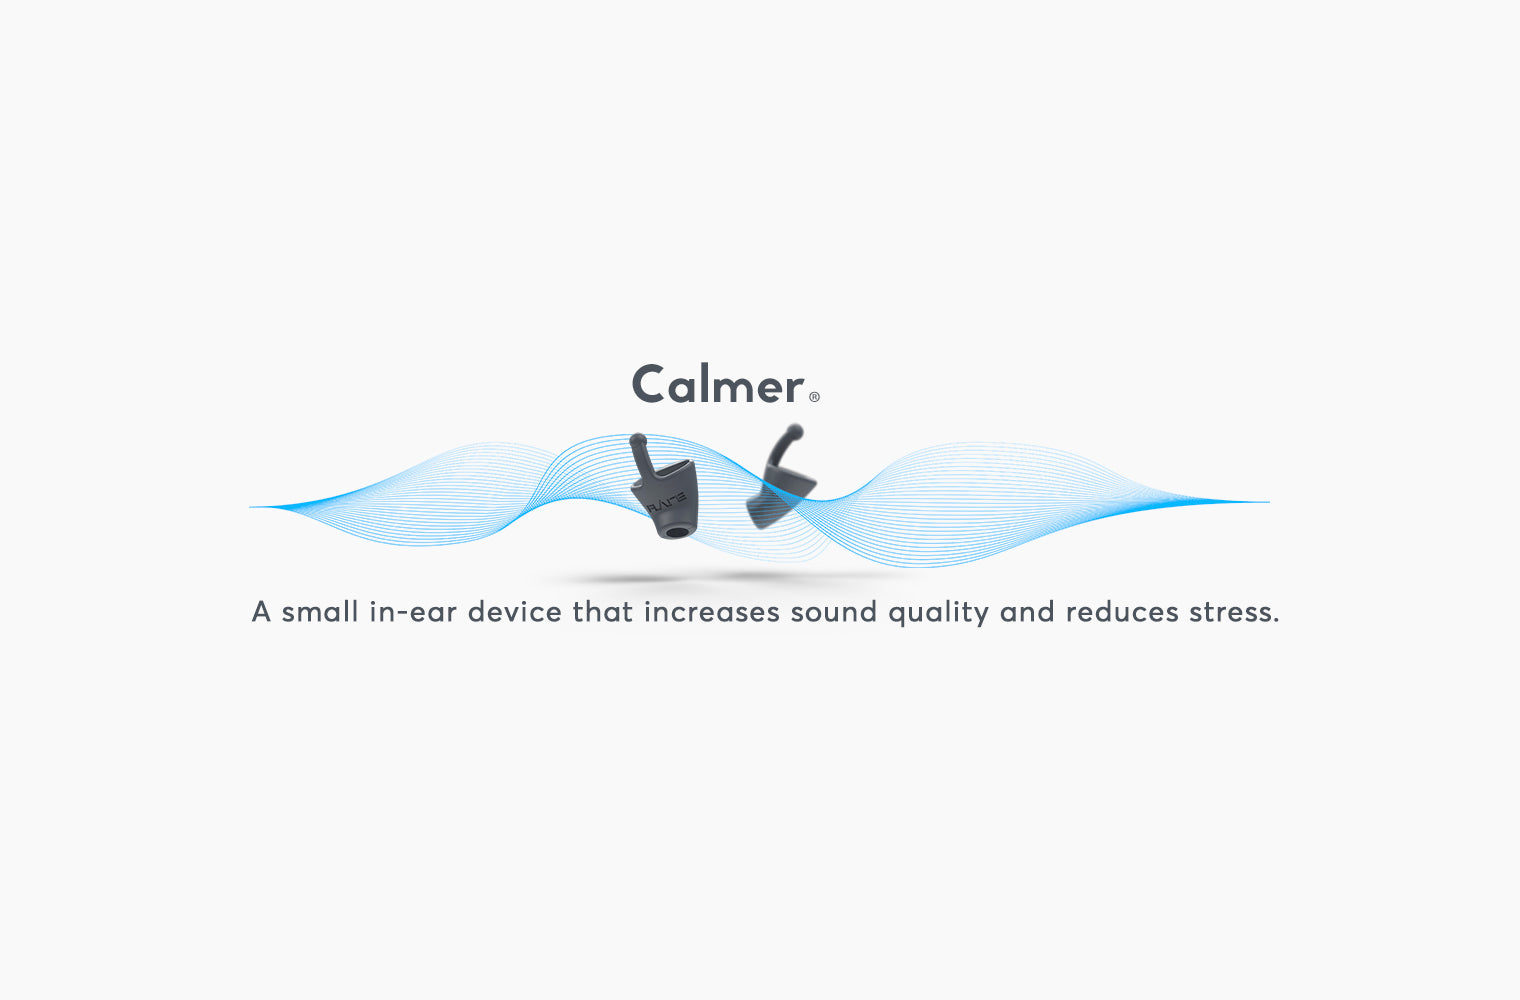 Calmer. A small in-ear device that increases sound quality and reduces stress.